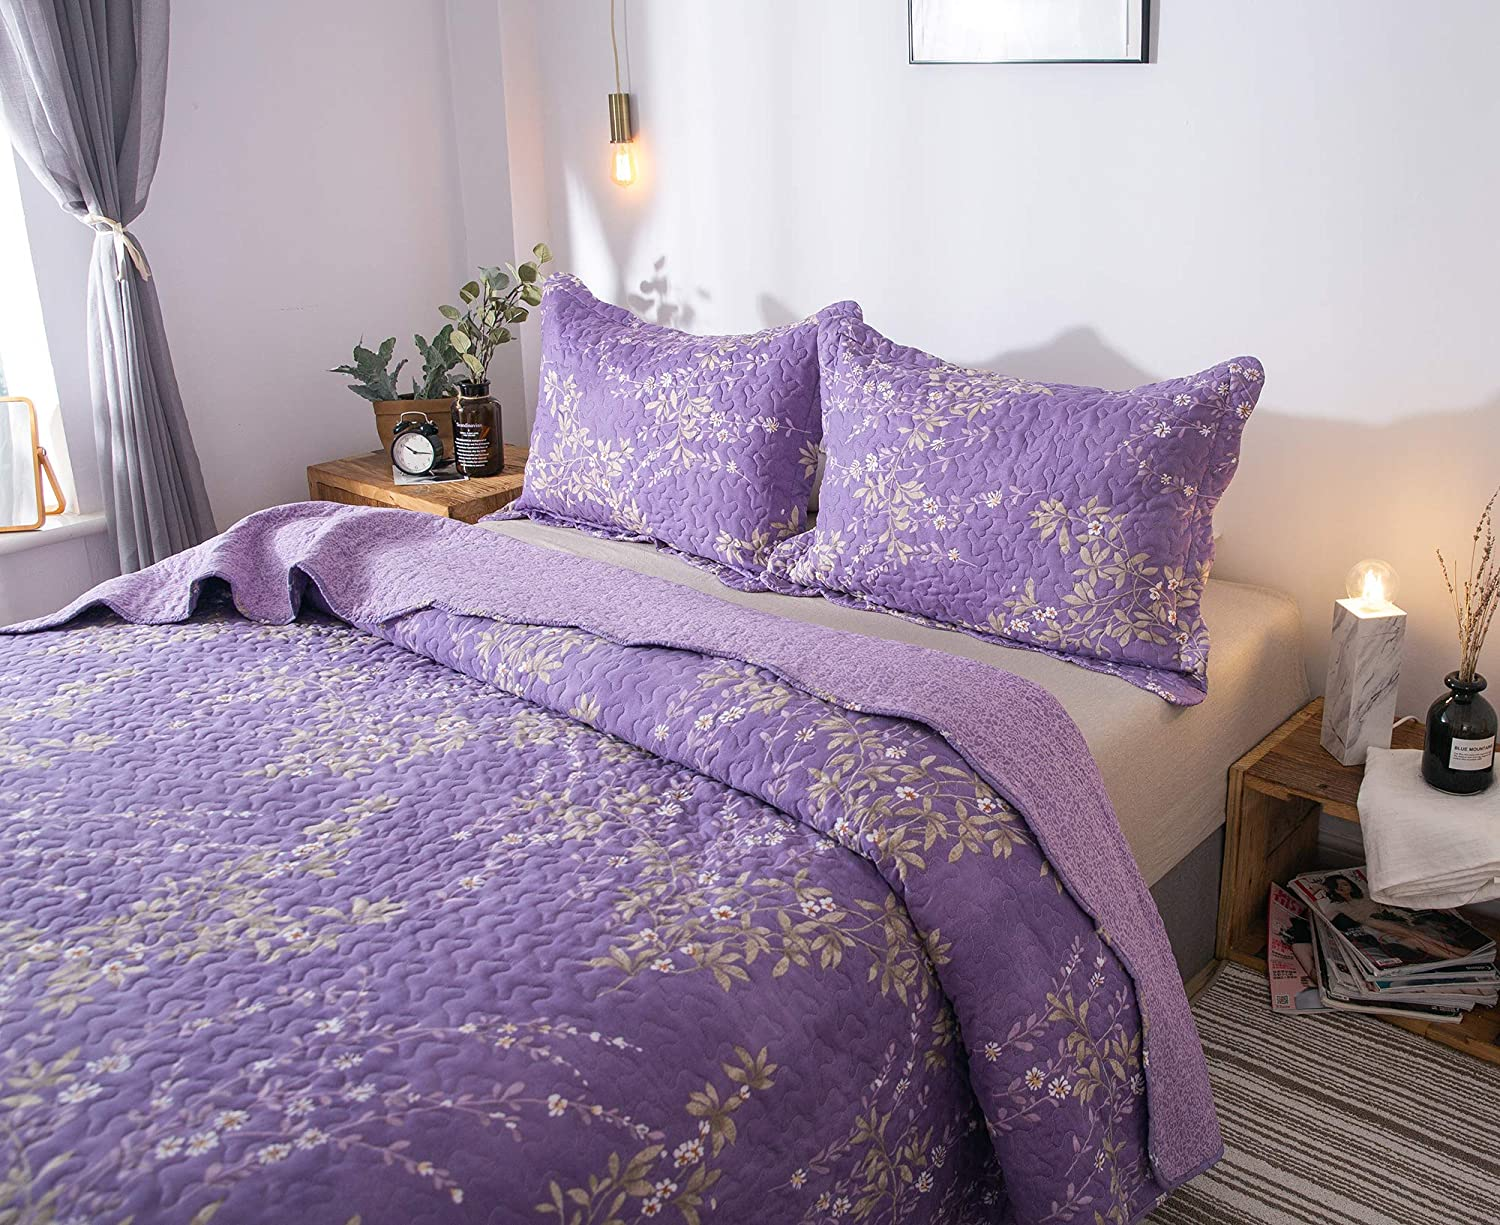 Save $20 on KASENTEX Country-Chic Printed Pre-Washed Quilt Set